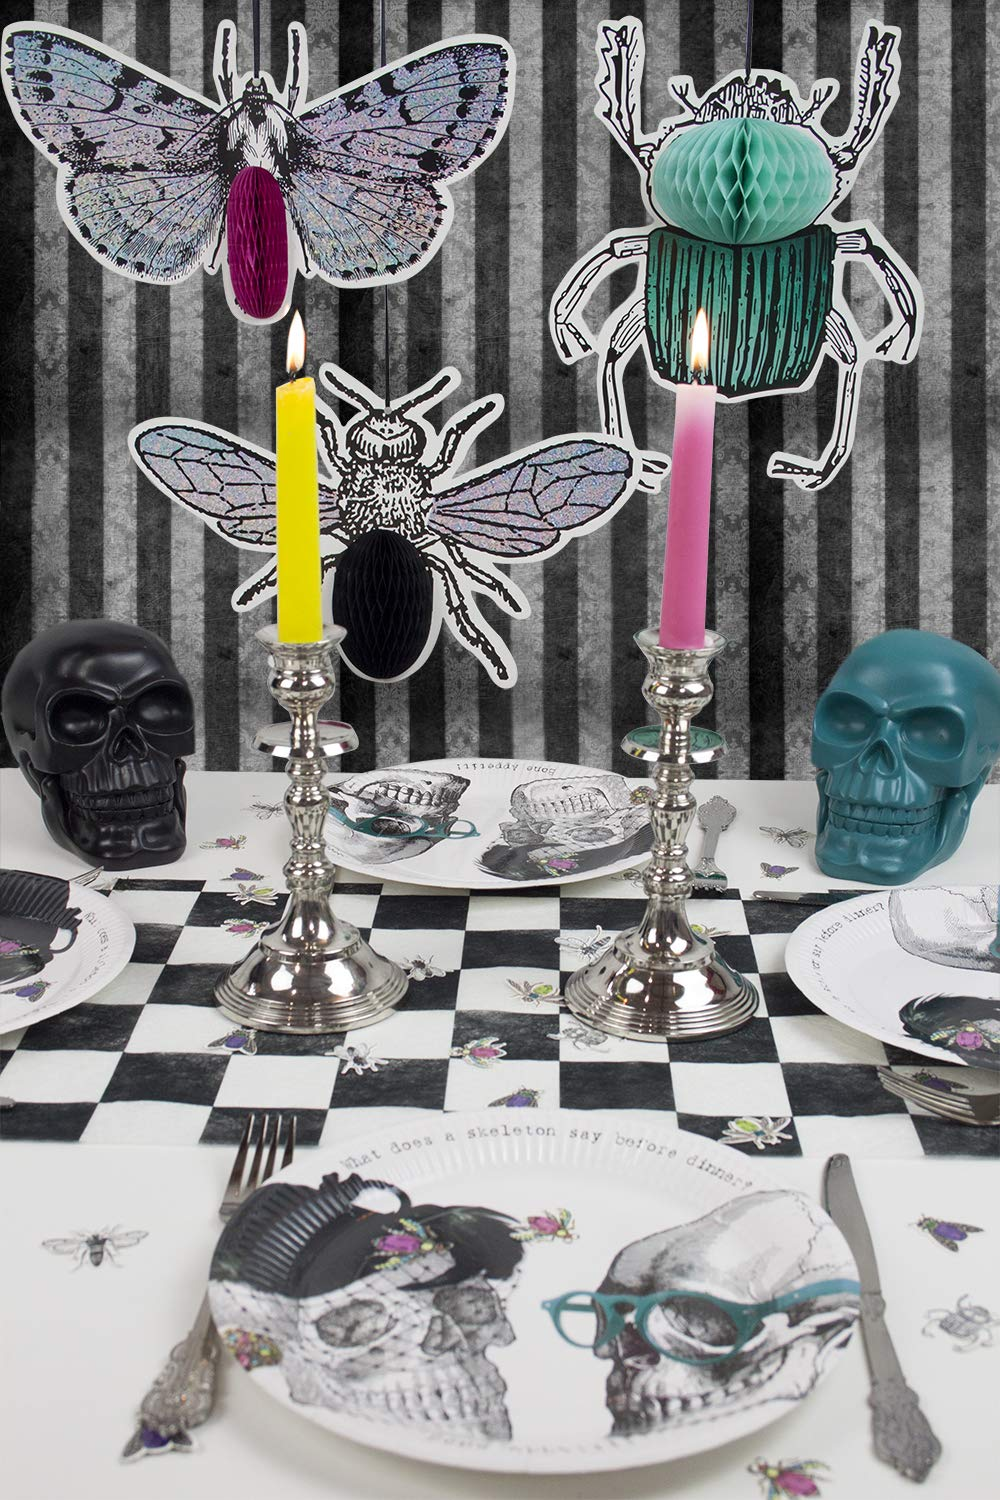 Talking Tables Truly Alice in Wonderland Checkered Fabric Table Runner for a Tea Party or Birthday, Monochrome